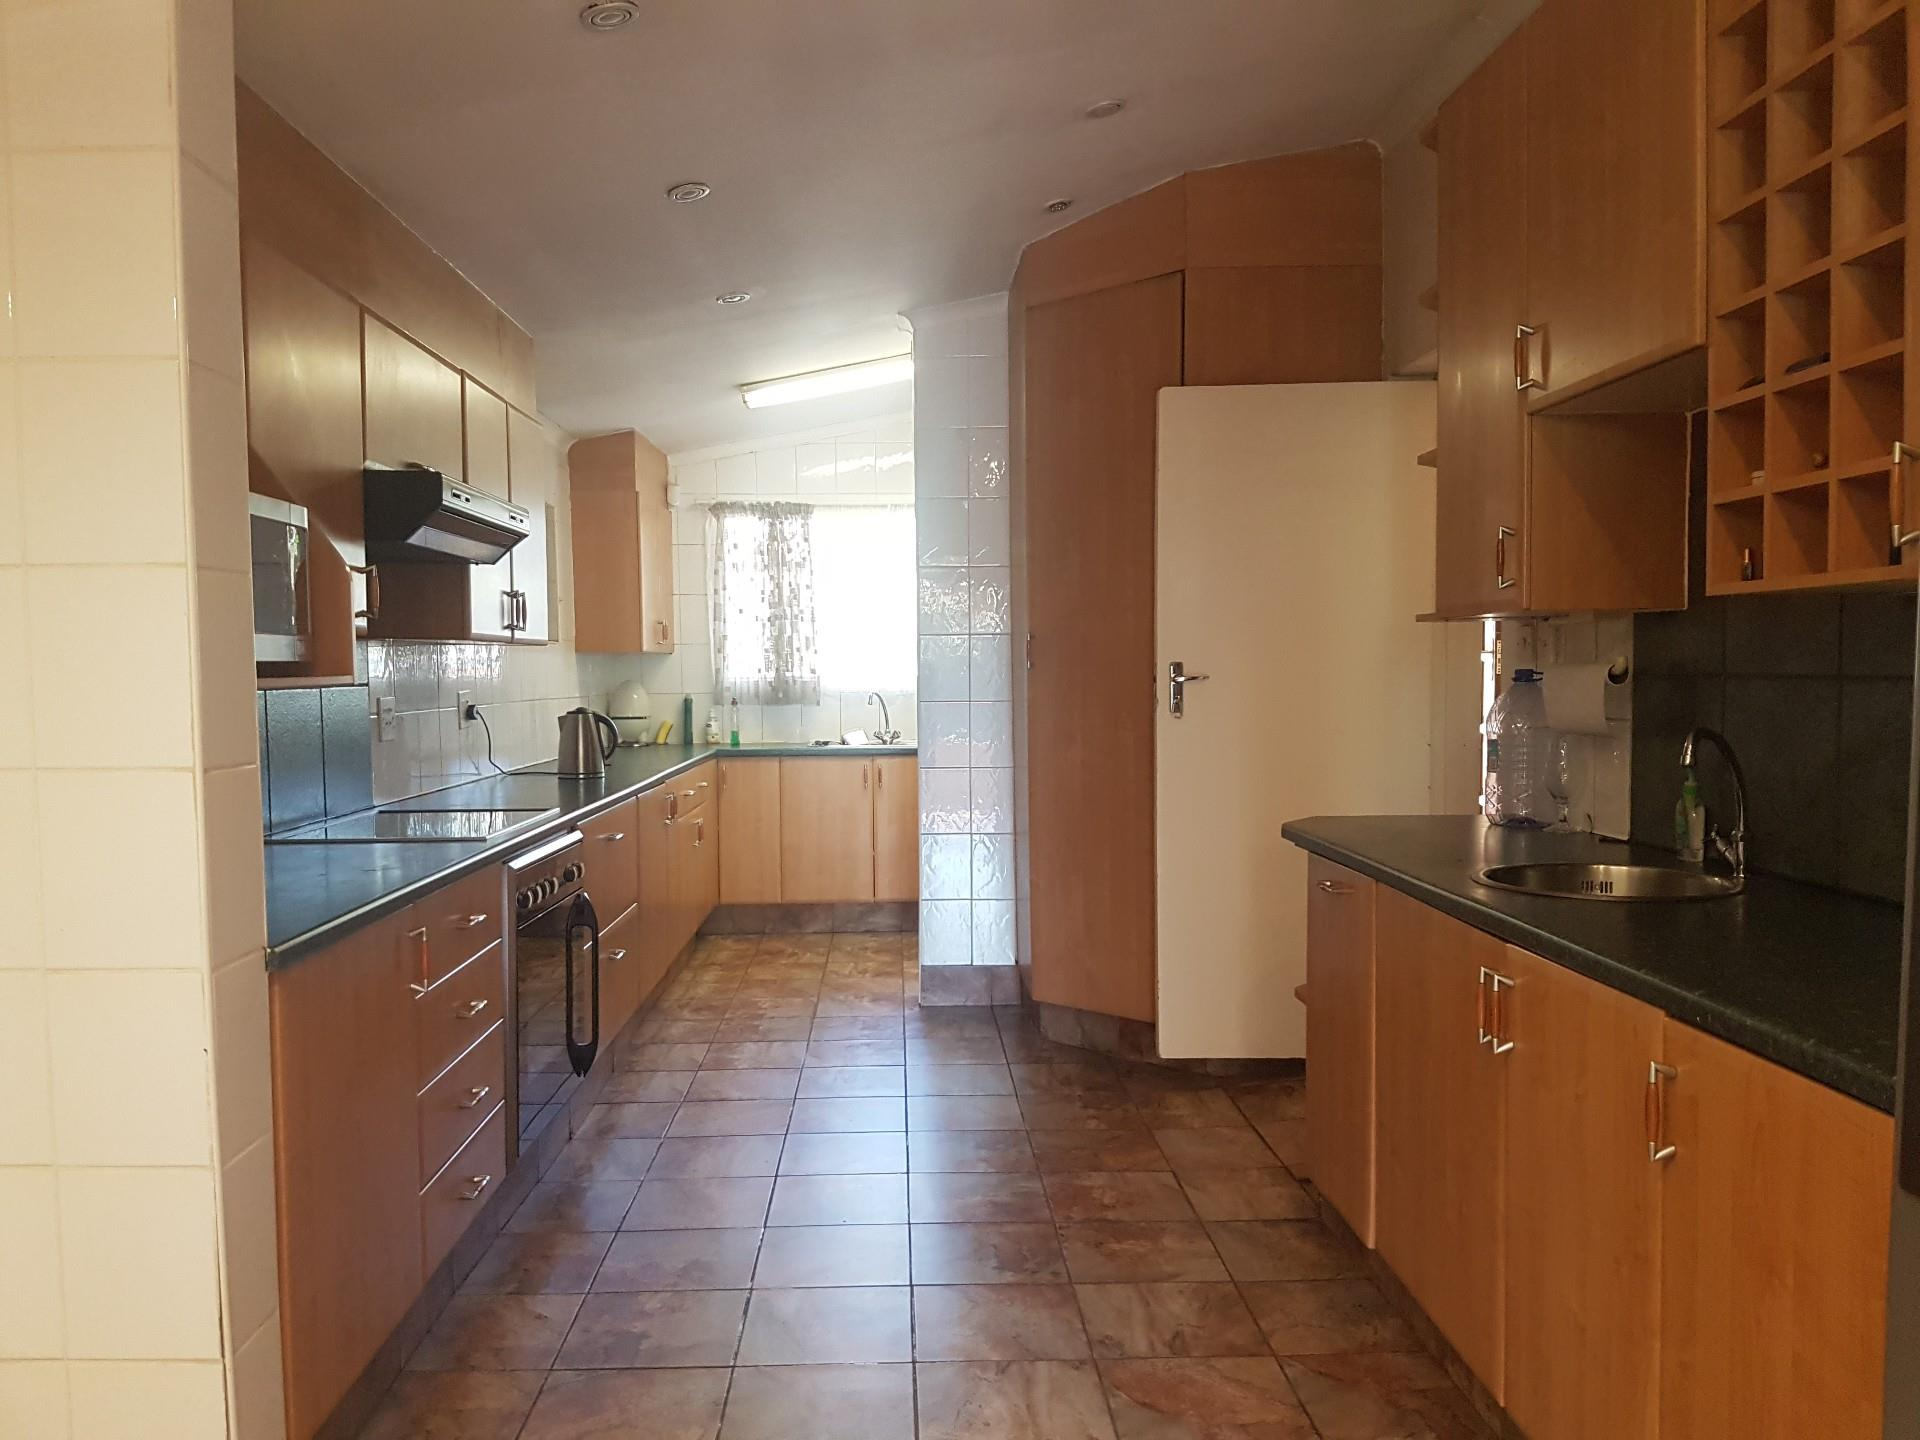 4 Bedroom House For Sale in Broadhurst